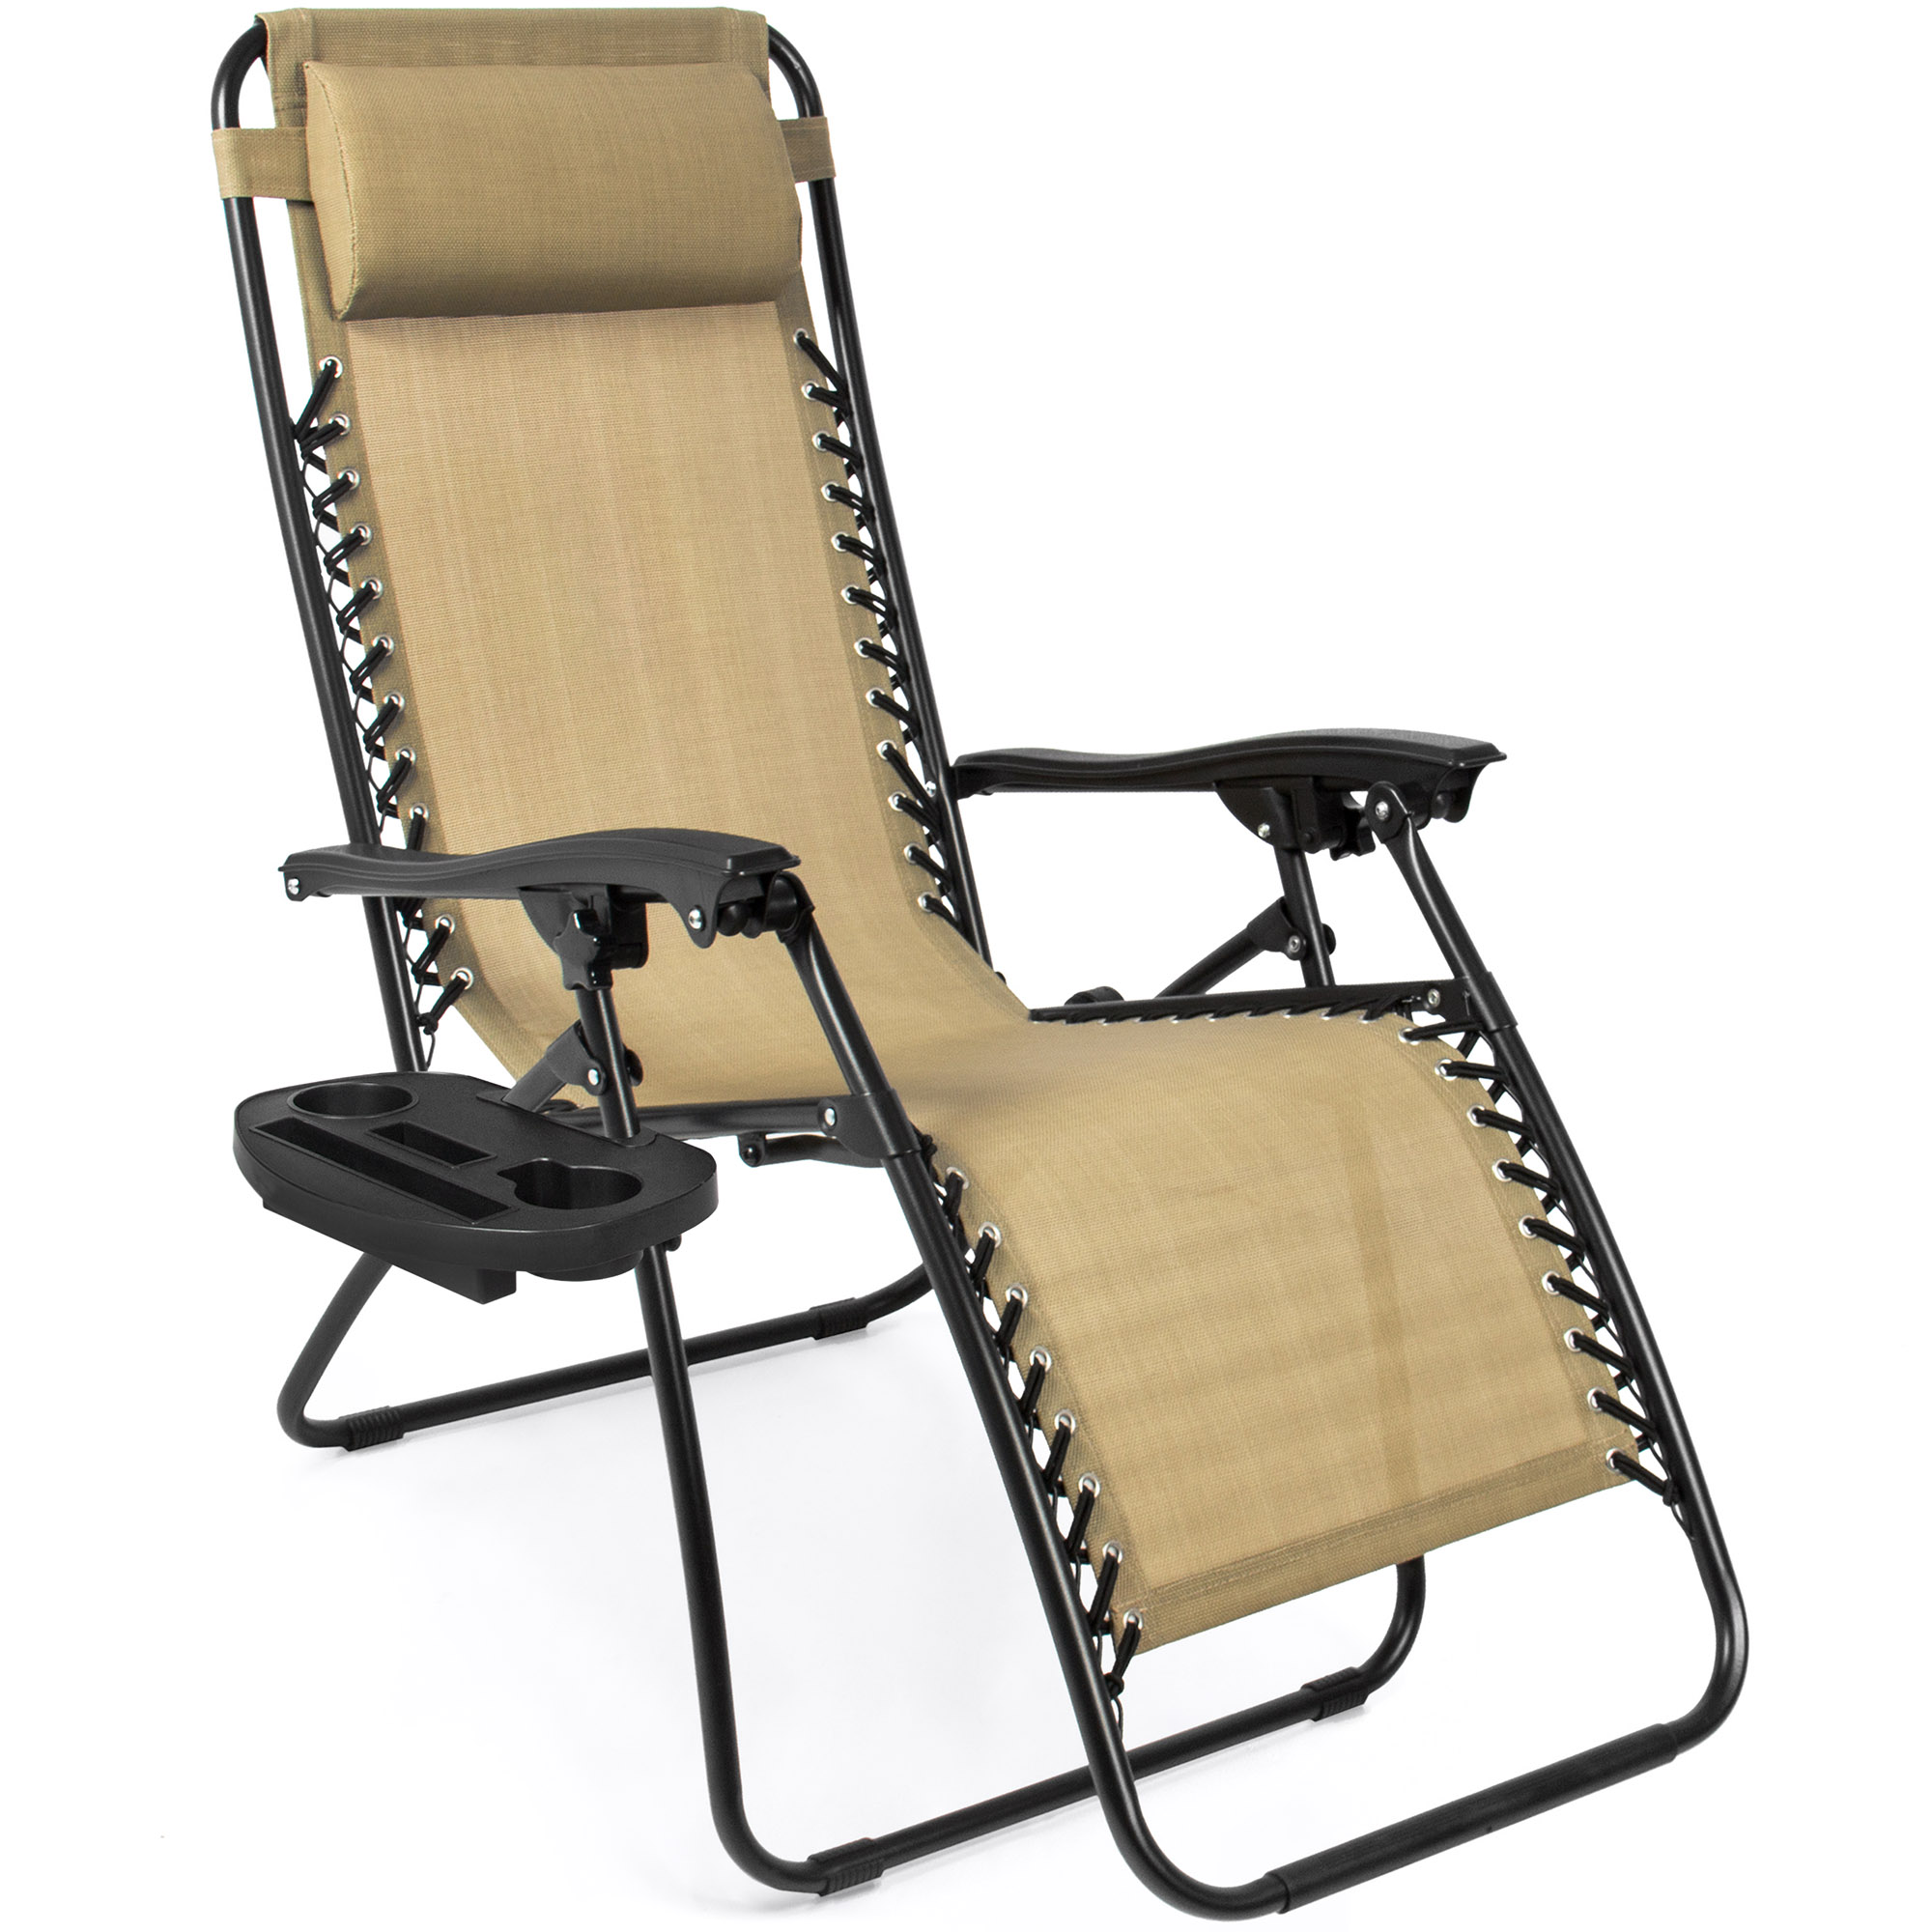 BCP-Set-of-2-Adjustable-Zero-Gravity-Patio-Chair-Recliners-w-Cup-Holders thumbnail 10